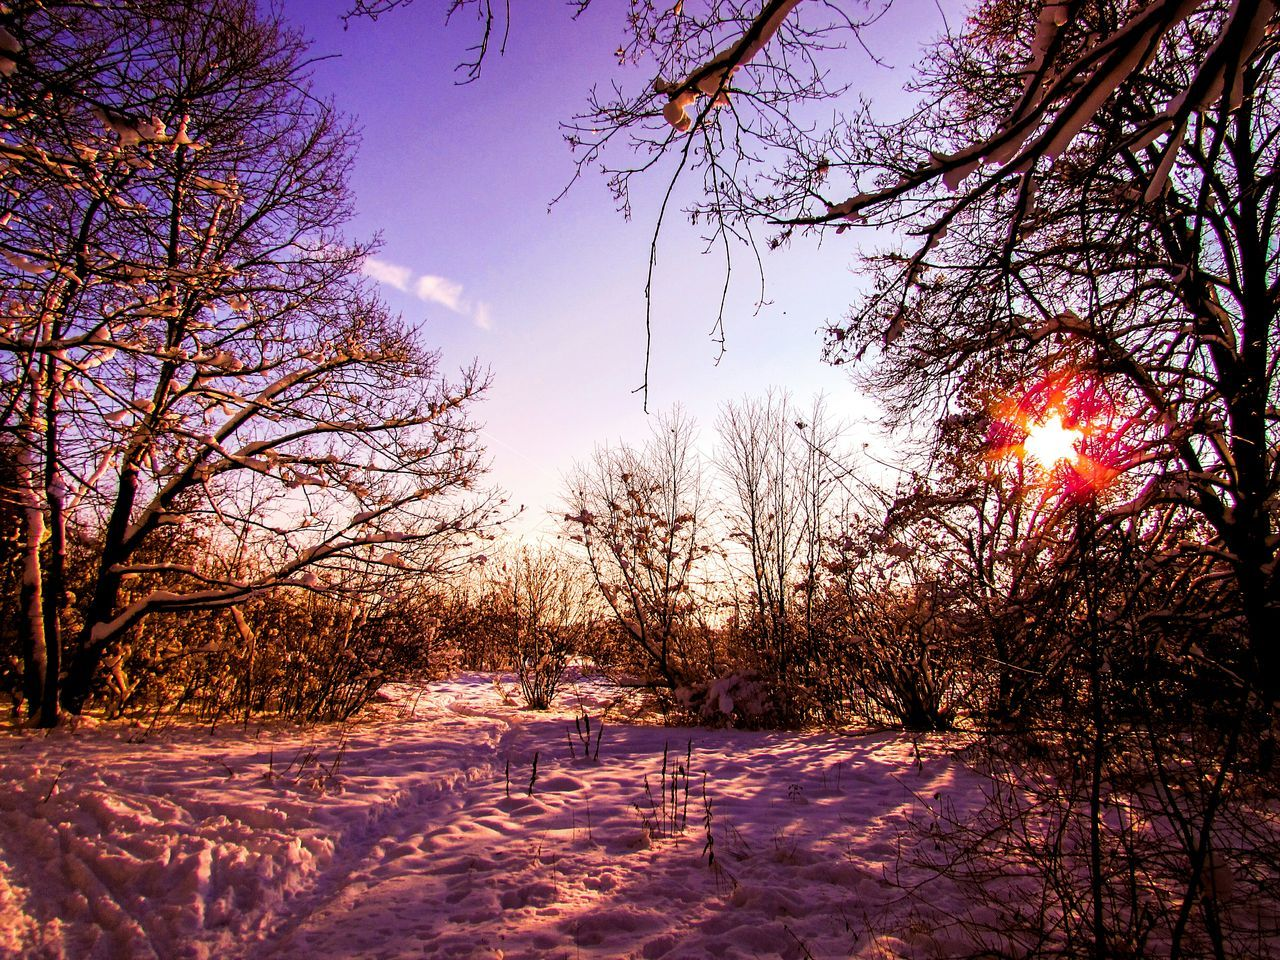 Tree No People Nature Sky Sunset Beauty In Nature Outdoors Streamzoofamily Streamzoo Streamzooers EyeEm Nature Lover Landscape EyeEm Gallery Winter Winterscapes Eyeemphotography Photo Of The Week Snow Winter Landscape Wintersunset Colorful Munich Holidays Holiday Wintertime